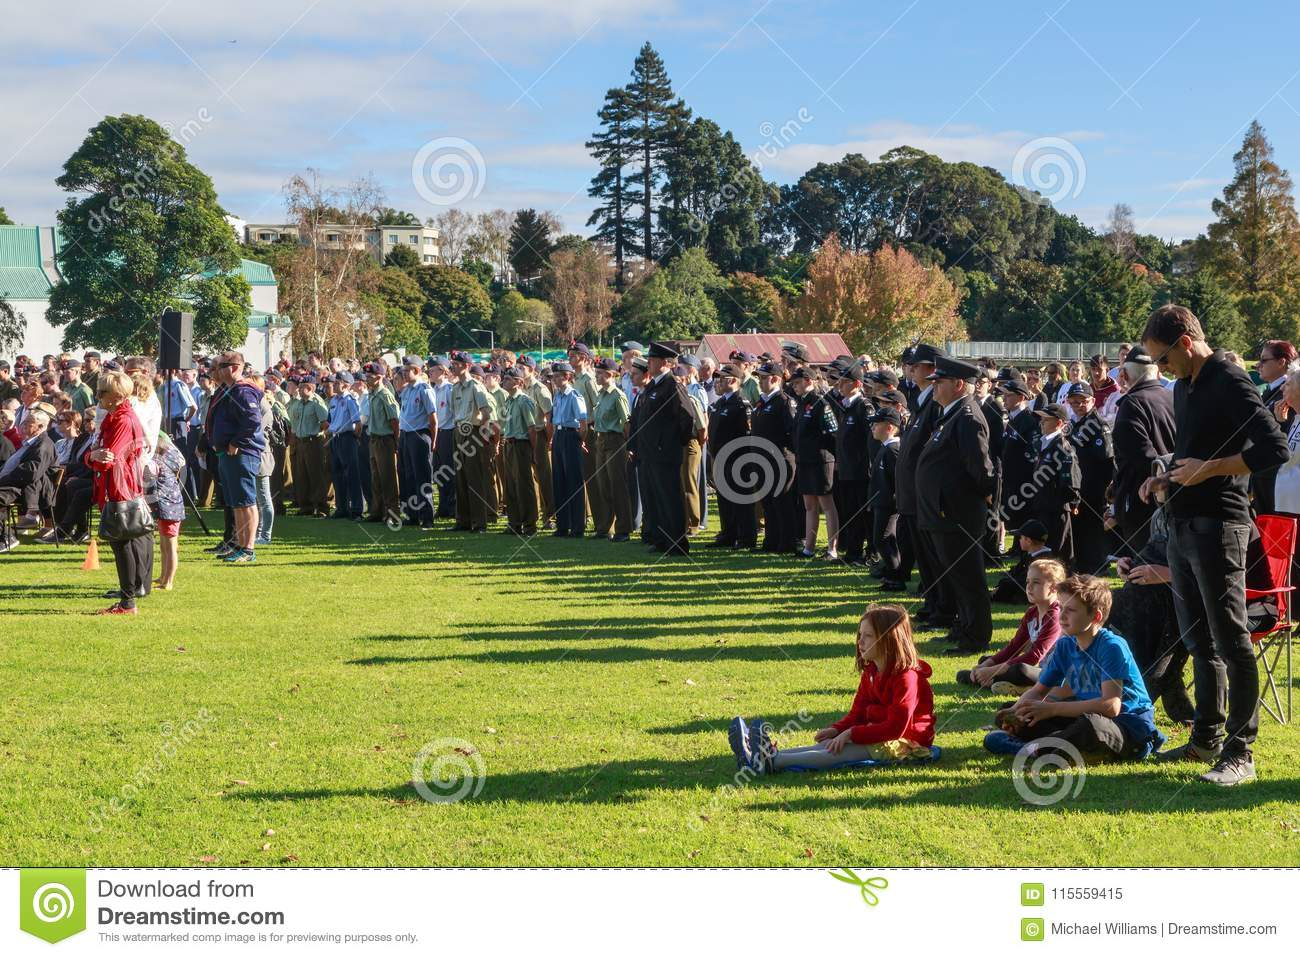 Anzac Day 2018, Tauranga, NZ: Crowd gathered for ceremony at Memorial Park